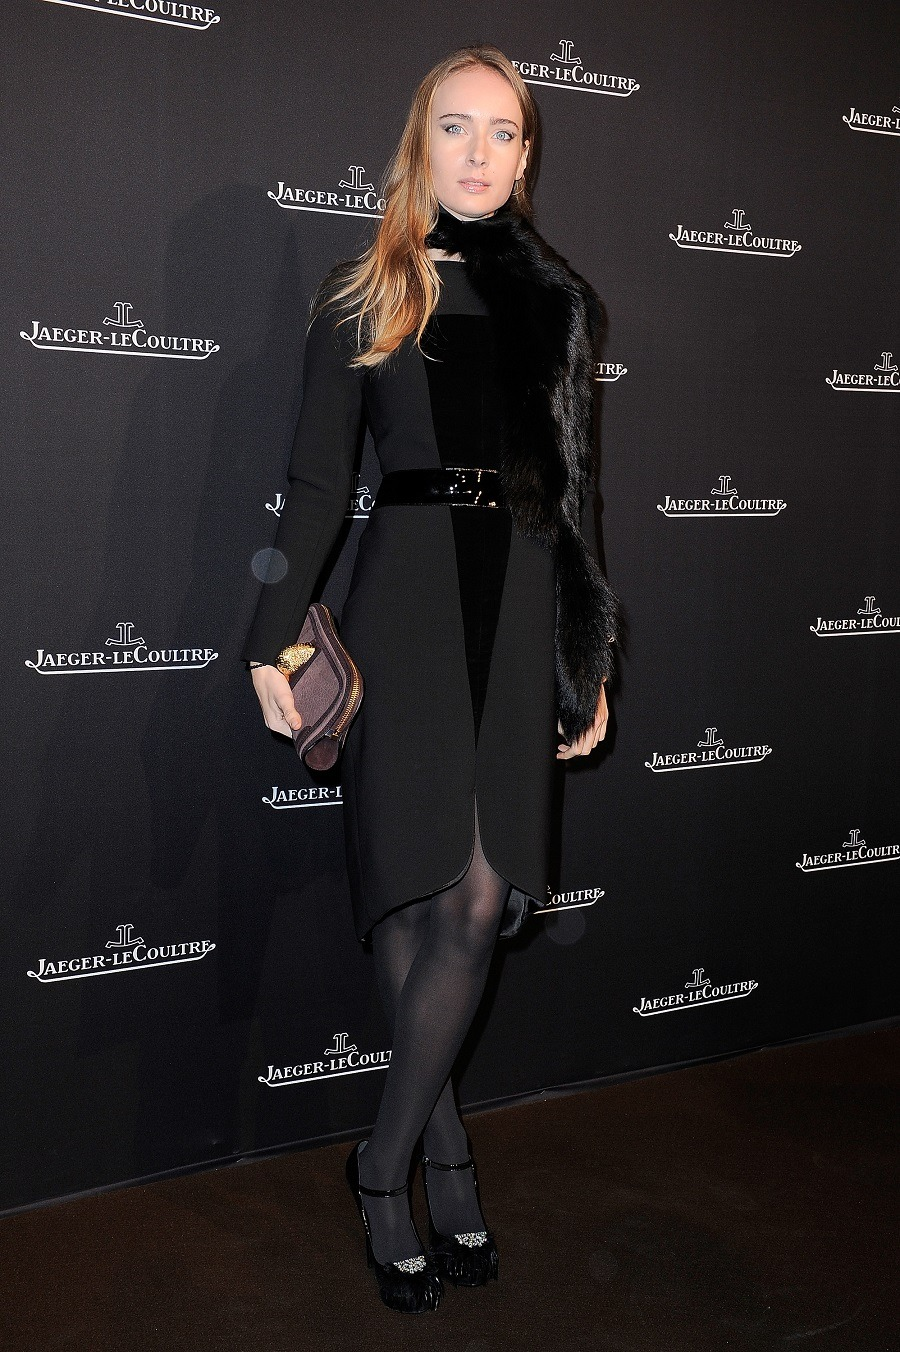 Olga Sorokina attends the Jaeger-LeCoultre Place Vendome Boutique